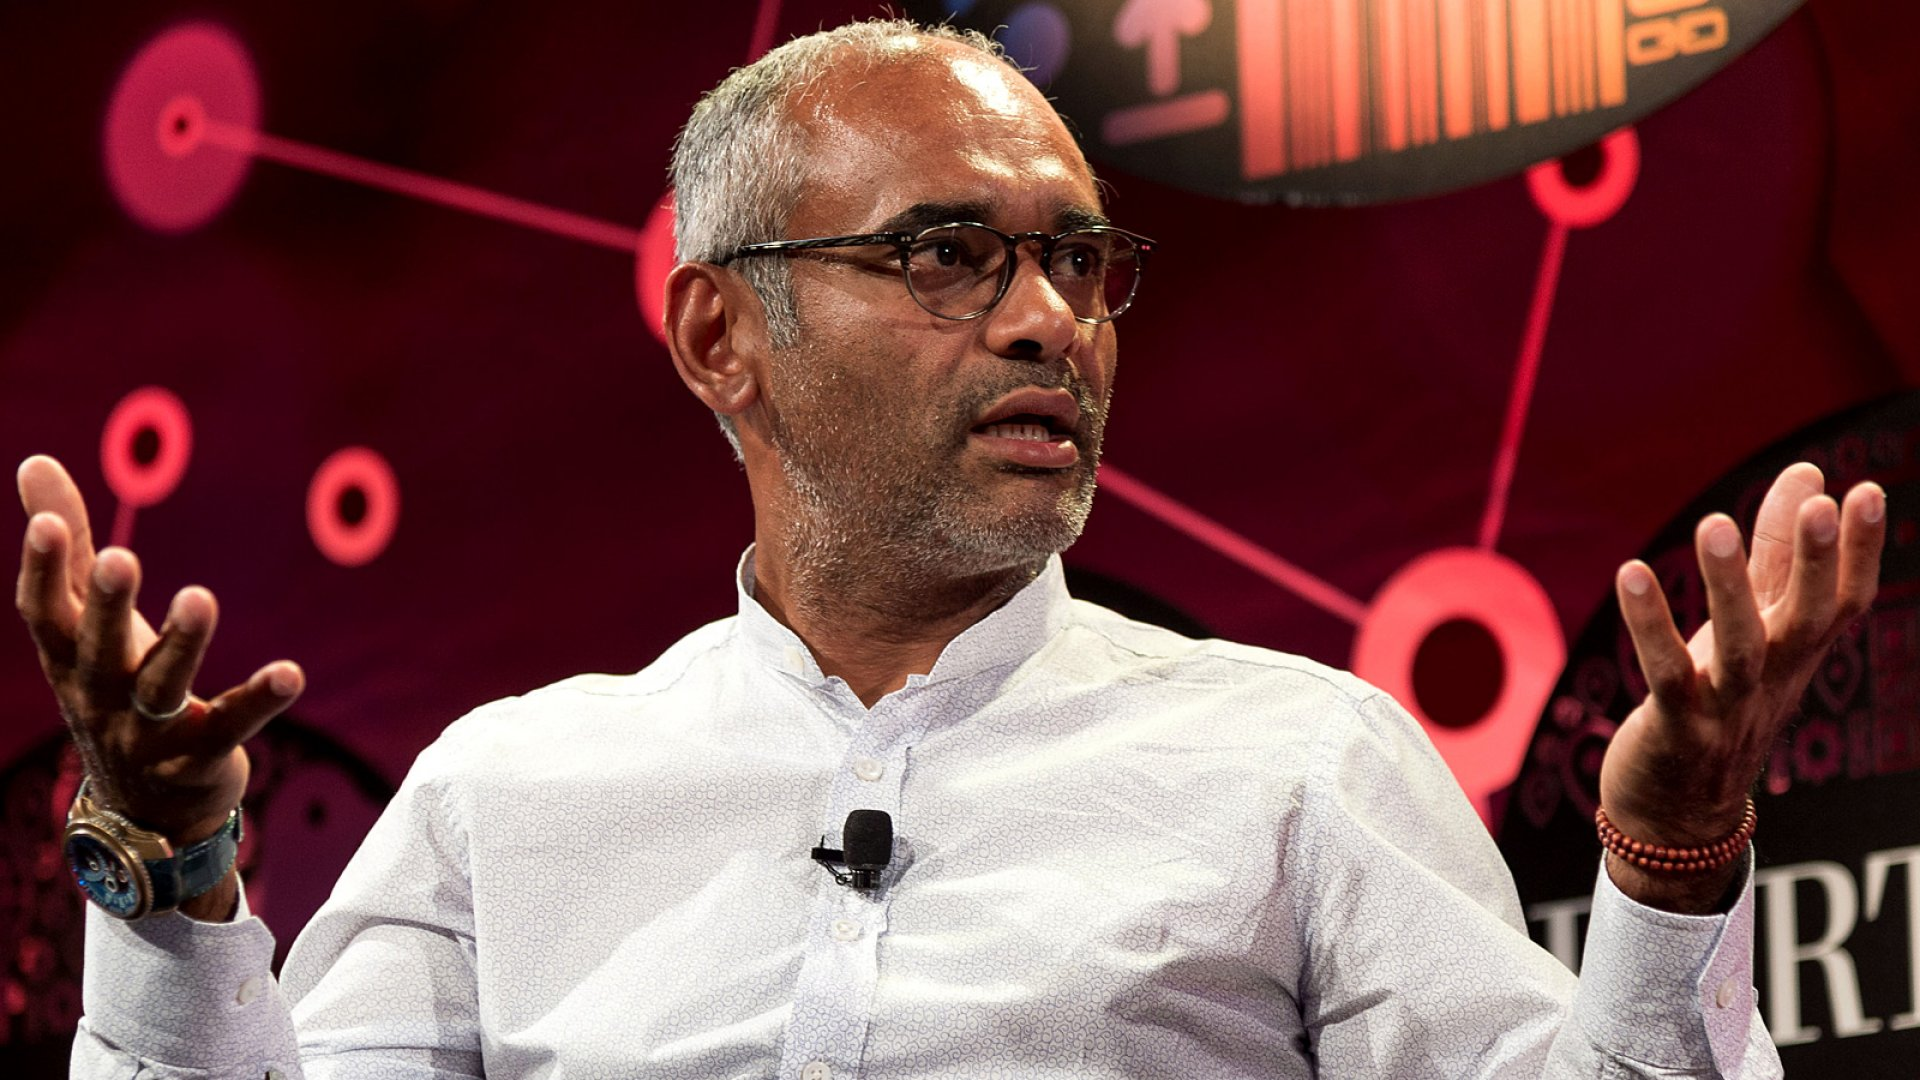 Aereo to Broadcasters: Bring It On